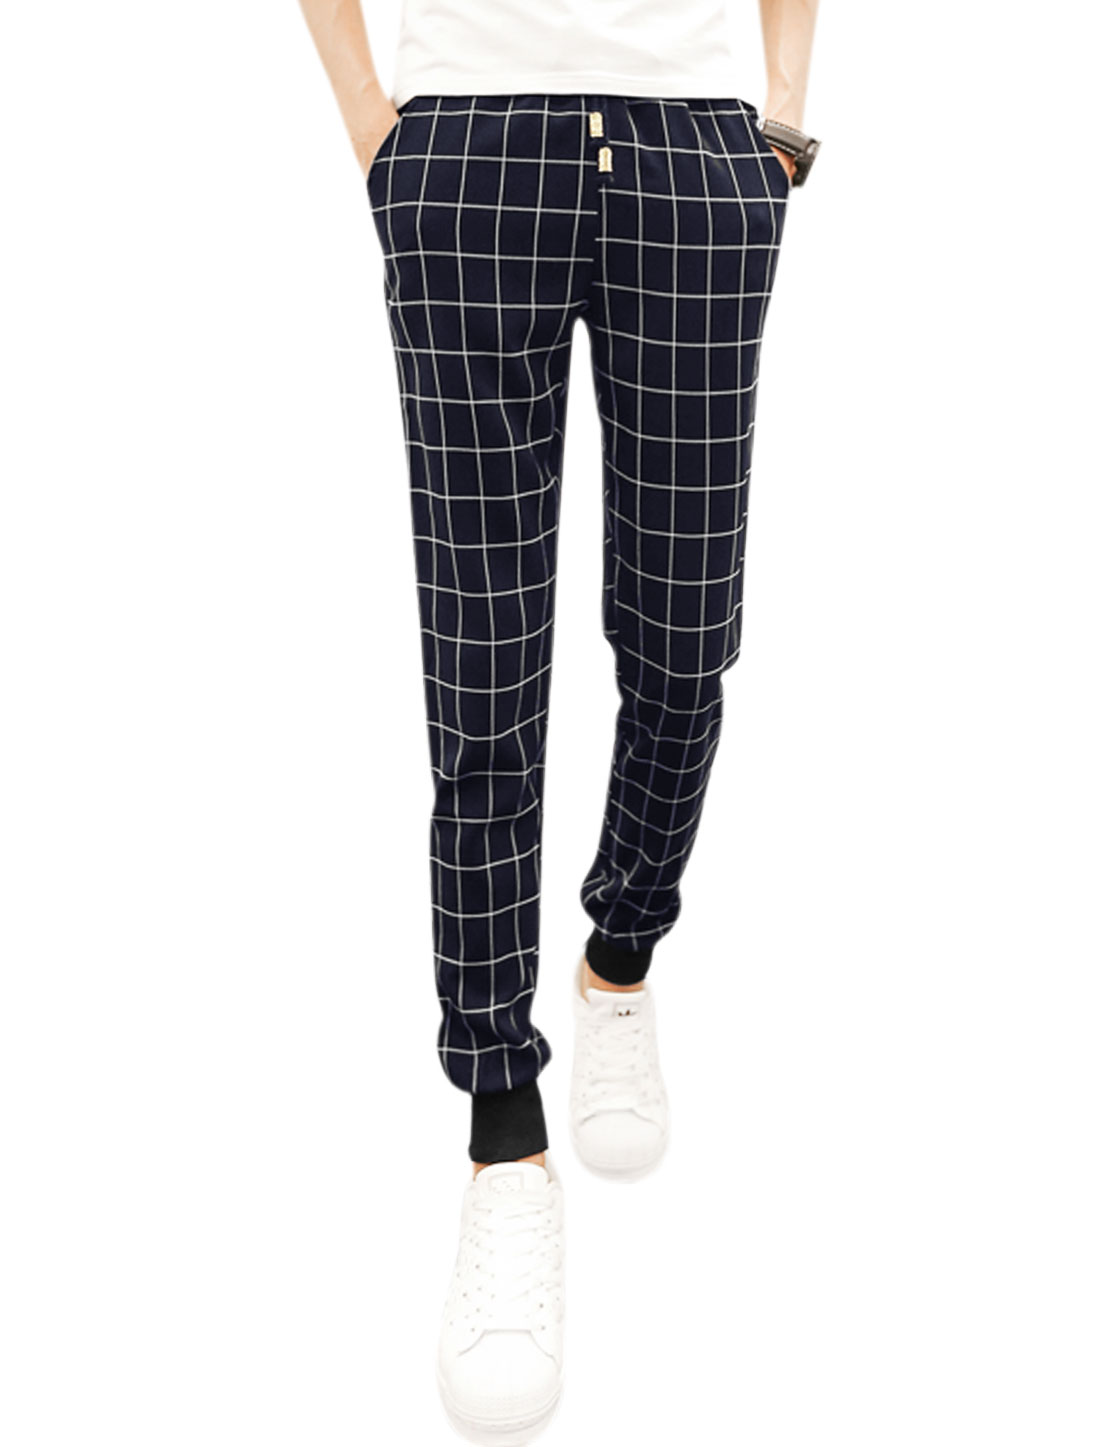 Men Natural Waist Plaids Tapered Leisure Pants Blue W30